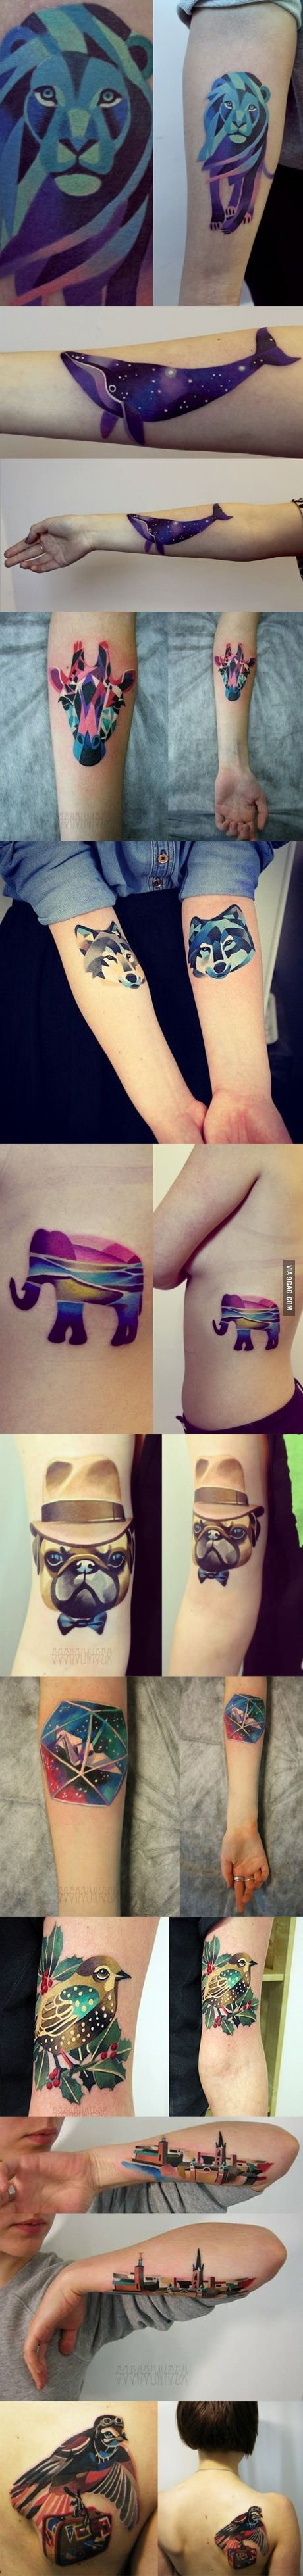 I love the saturation and the shapes of this group of tattoos, they are really bright and you can tell what shape/ animal they form without taking away what scene makes up the figure